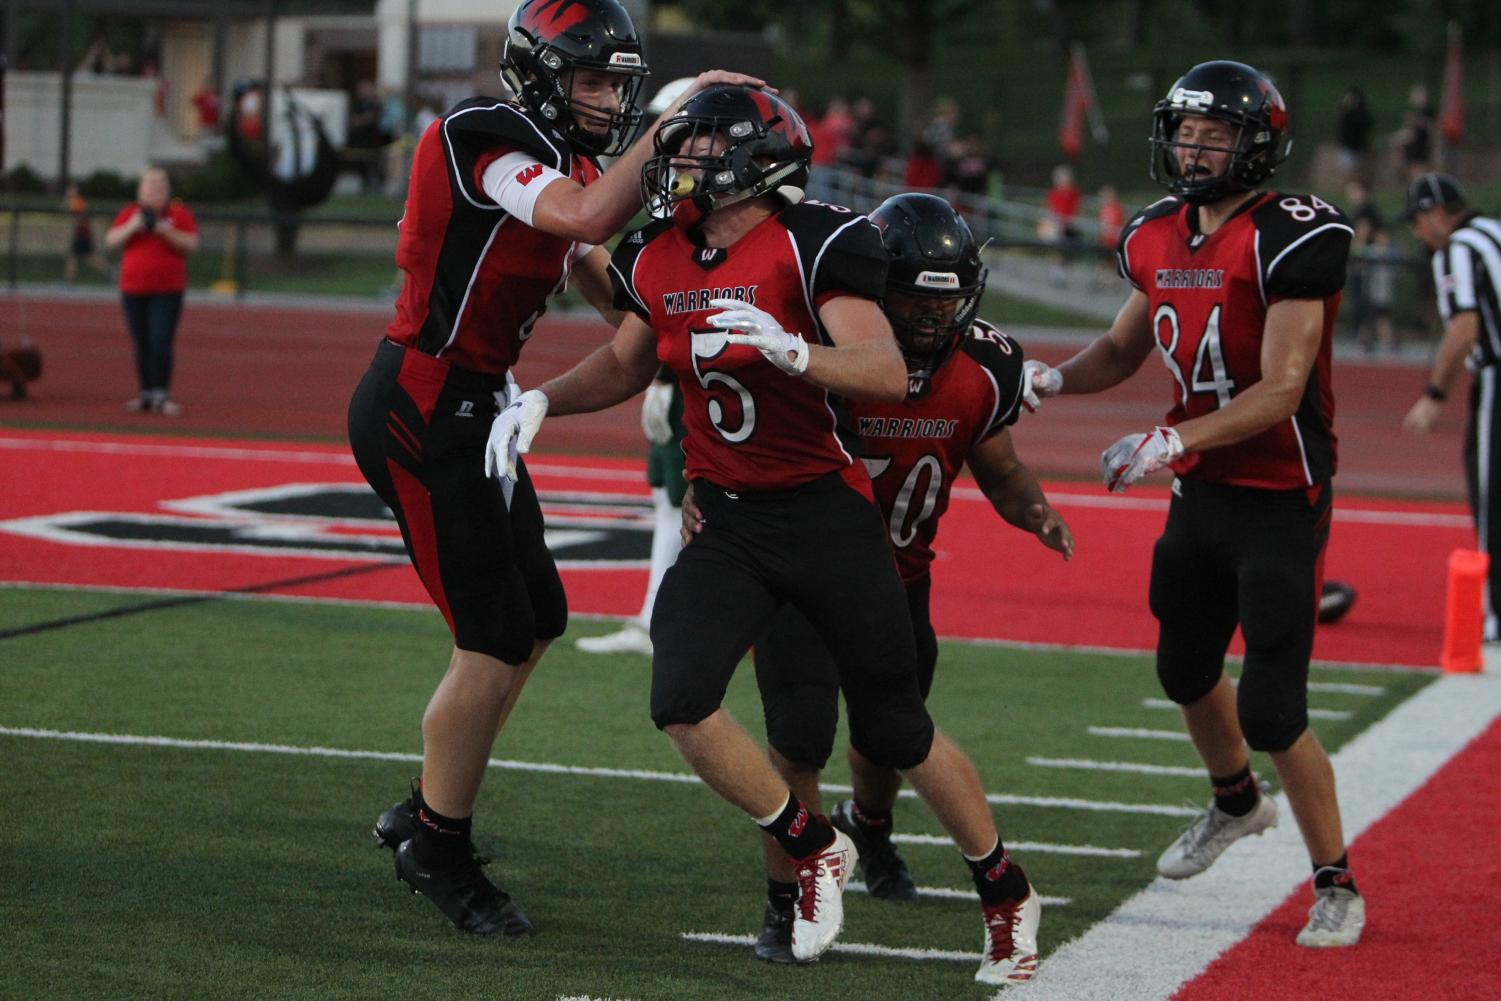 Senior Dylan Packett and his teammates celebrate a touchdown earlier in the season.